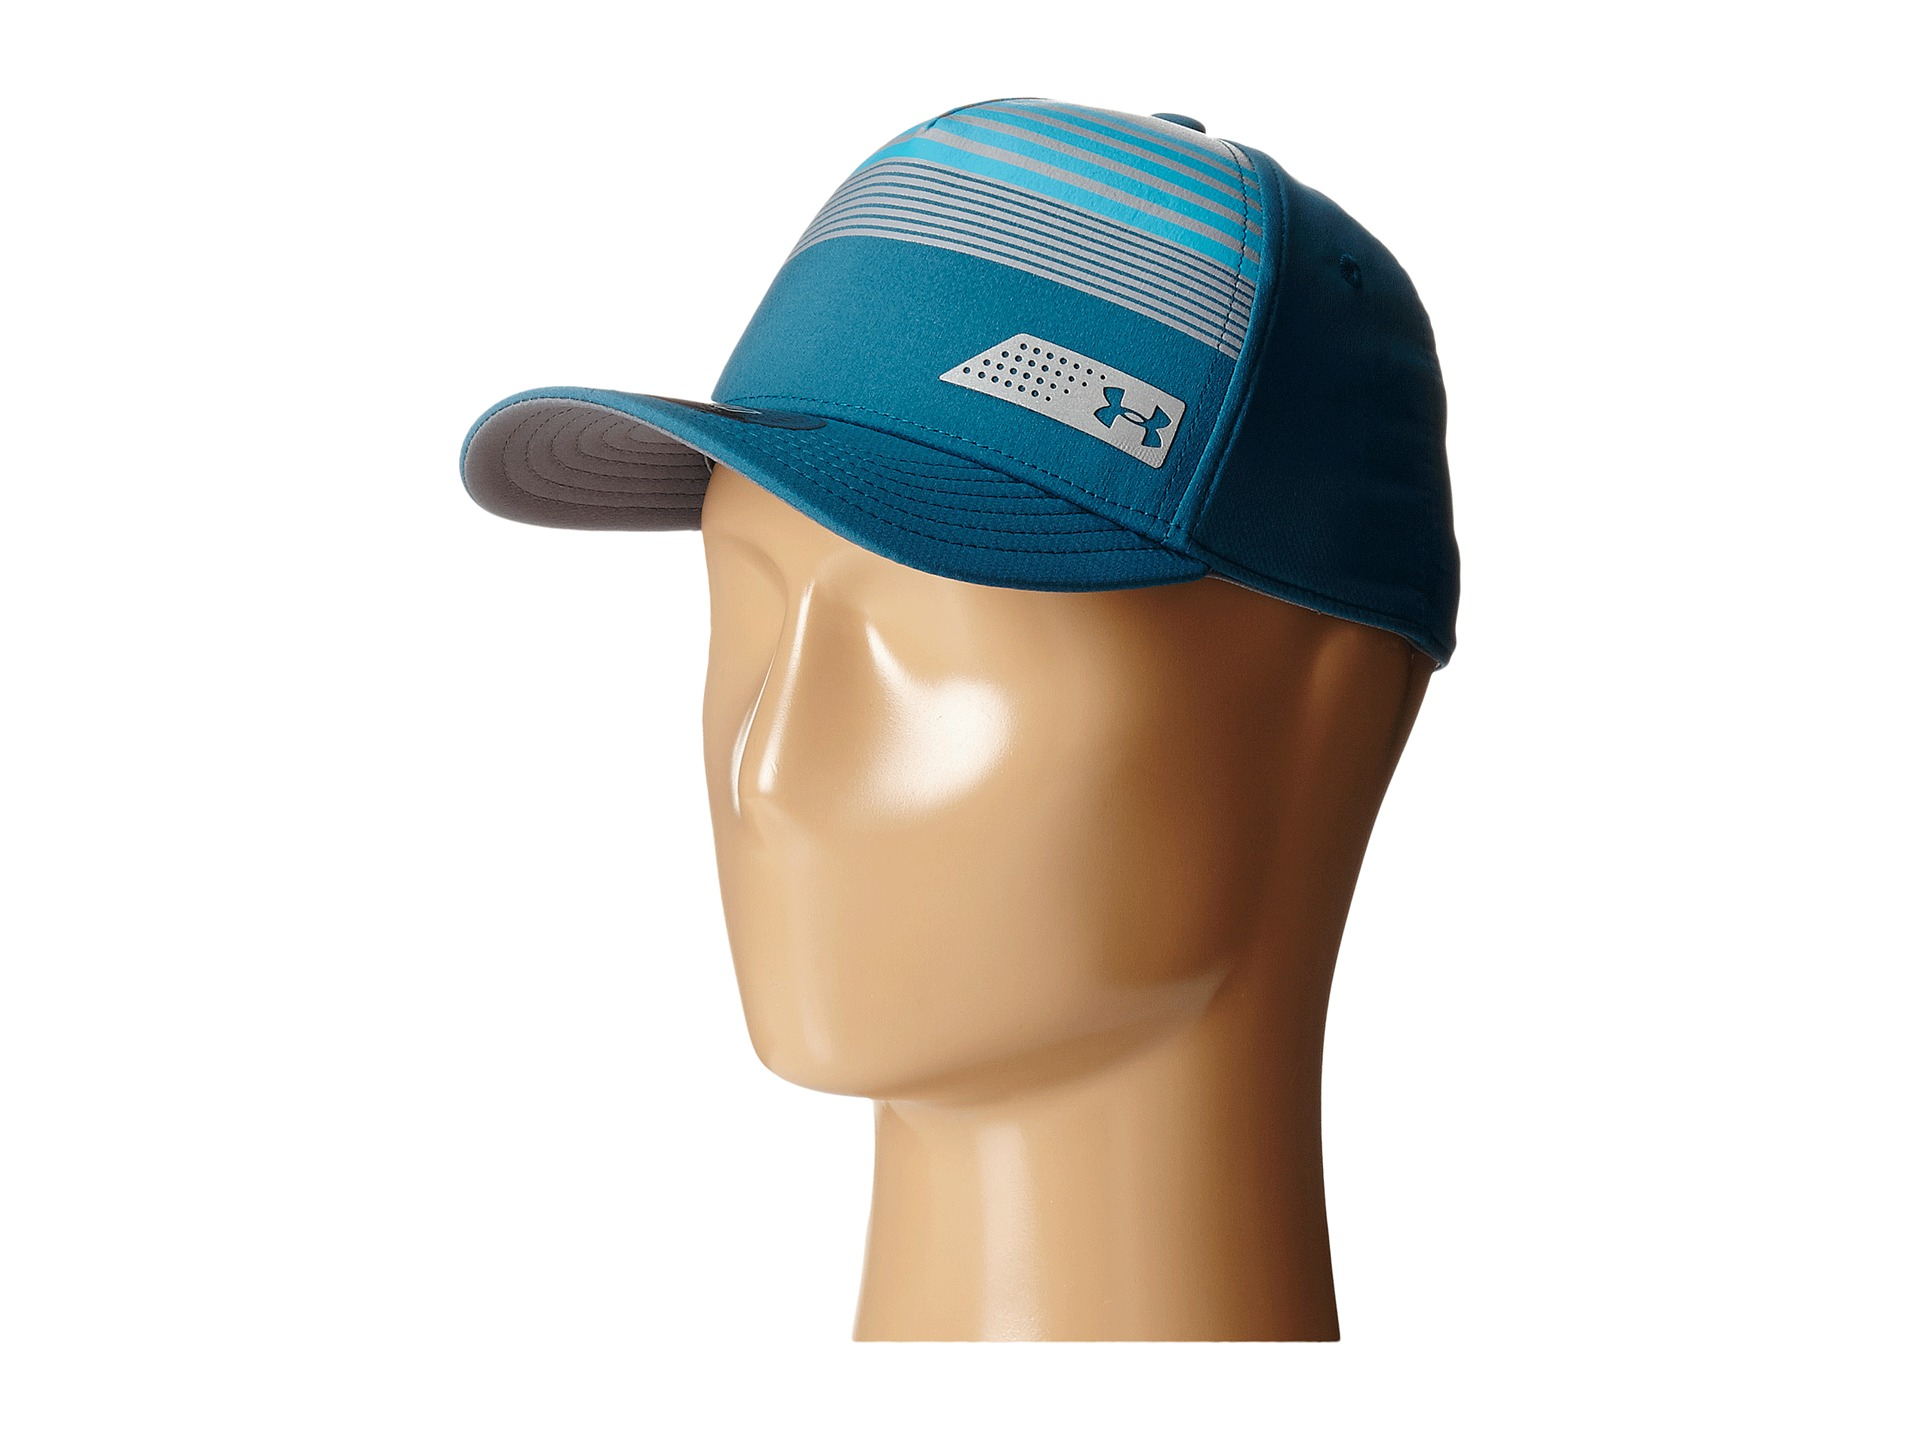 Lyst - Under Armour Ua Striped Low Crown Cap (youth) in Blue for Men 81edee17032